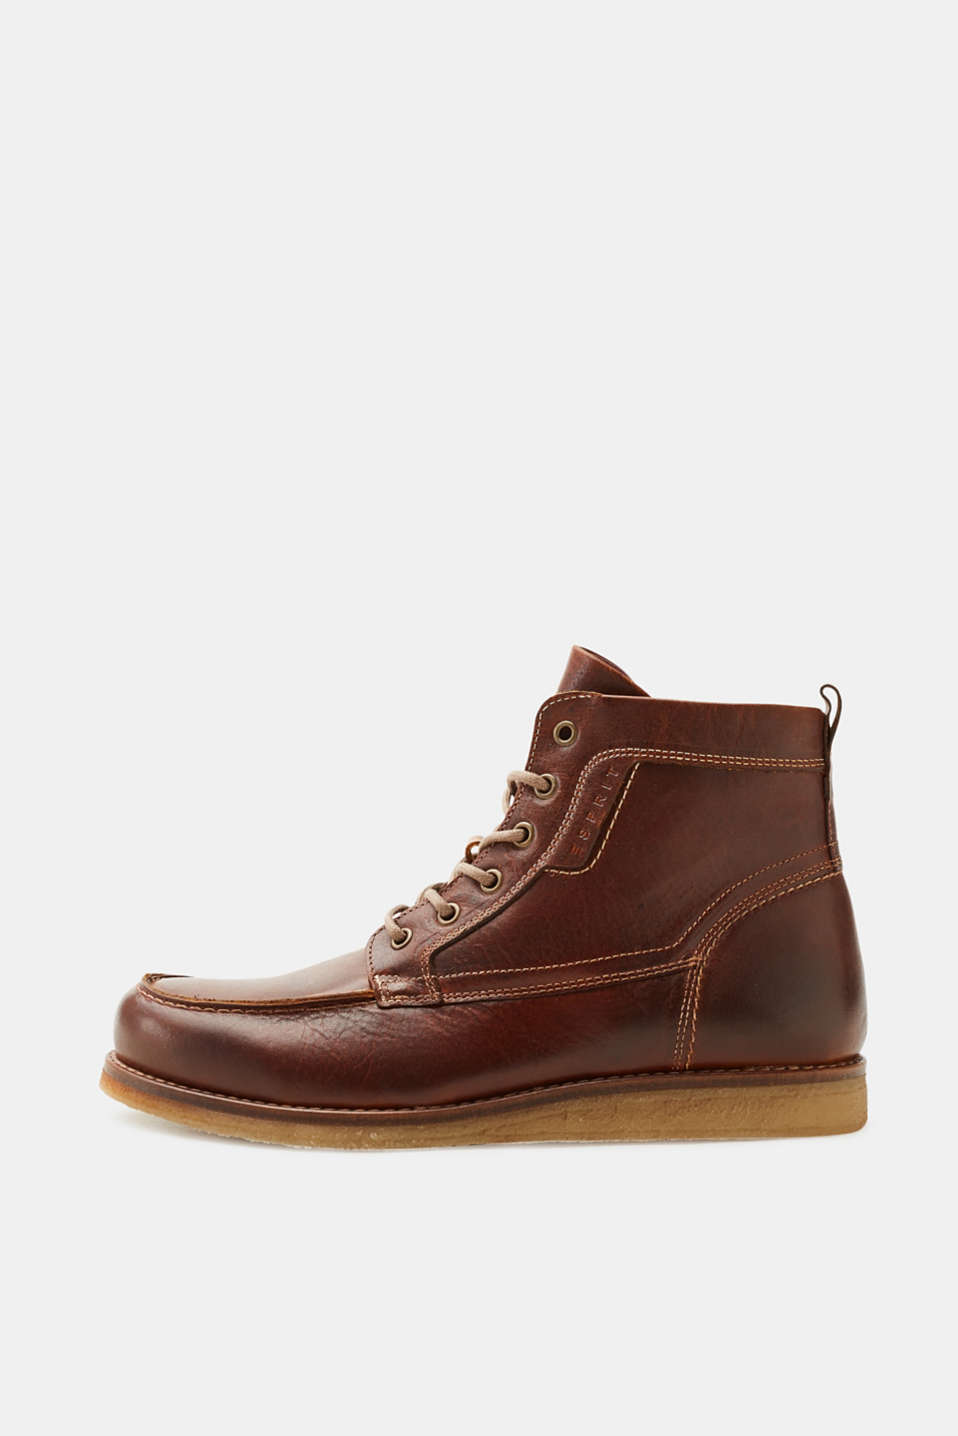 Esprit - Lace-up boots with crêpe sole, made of leather